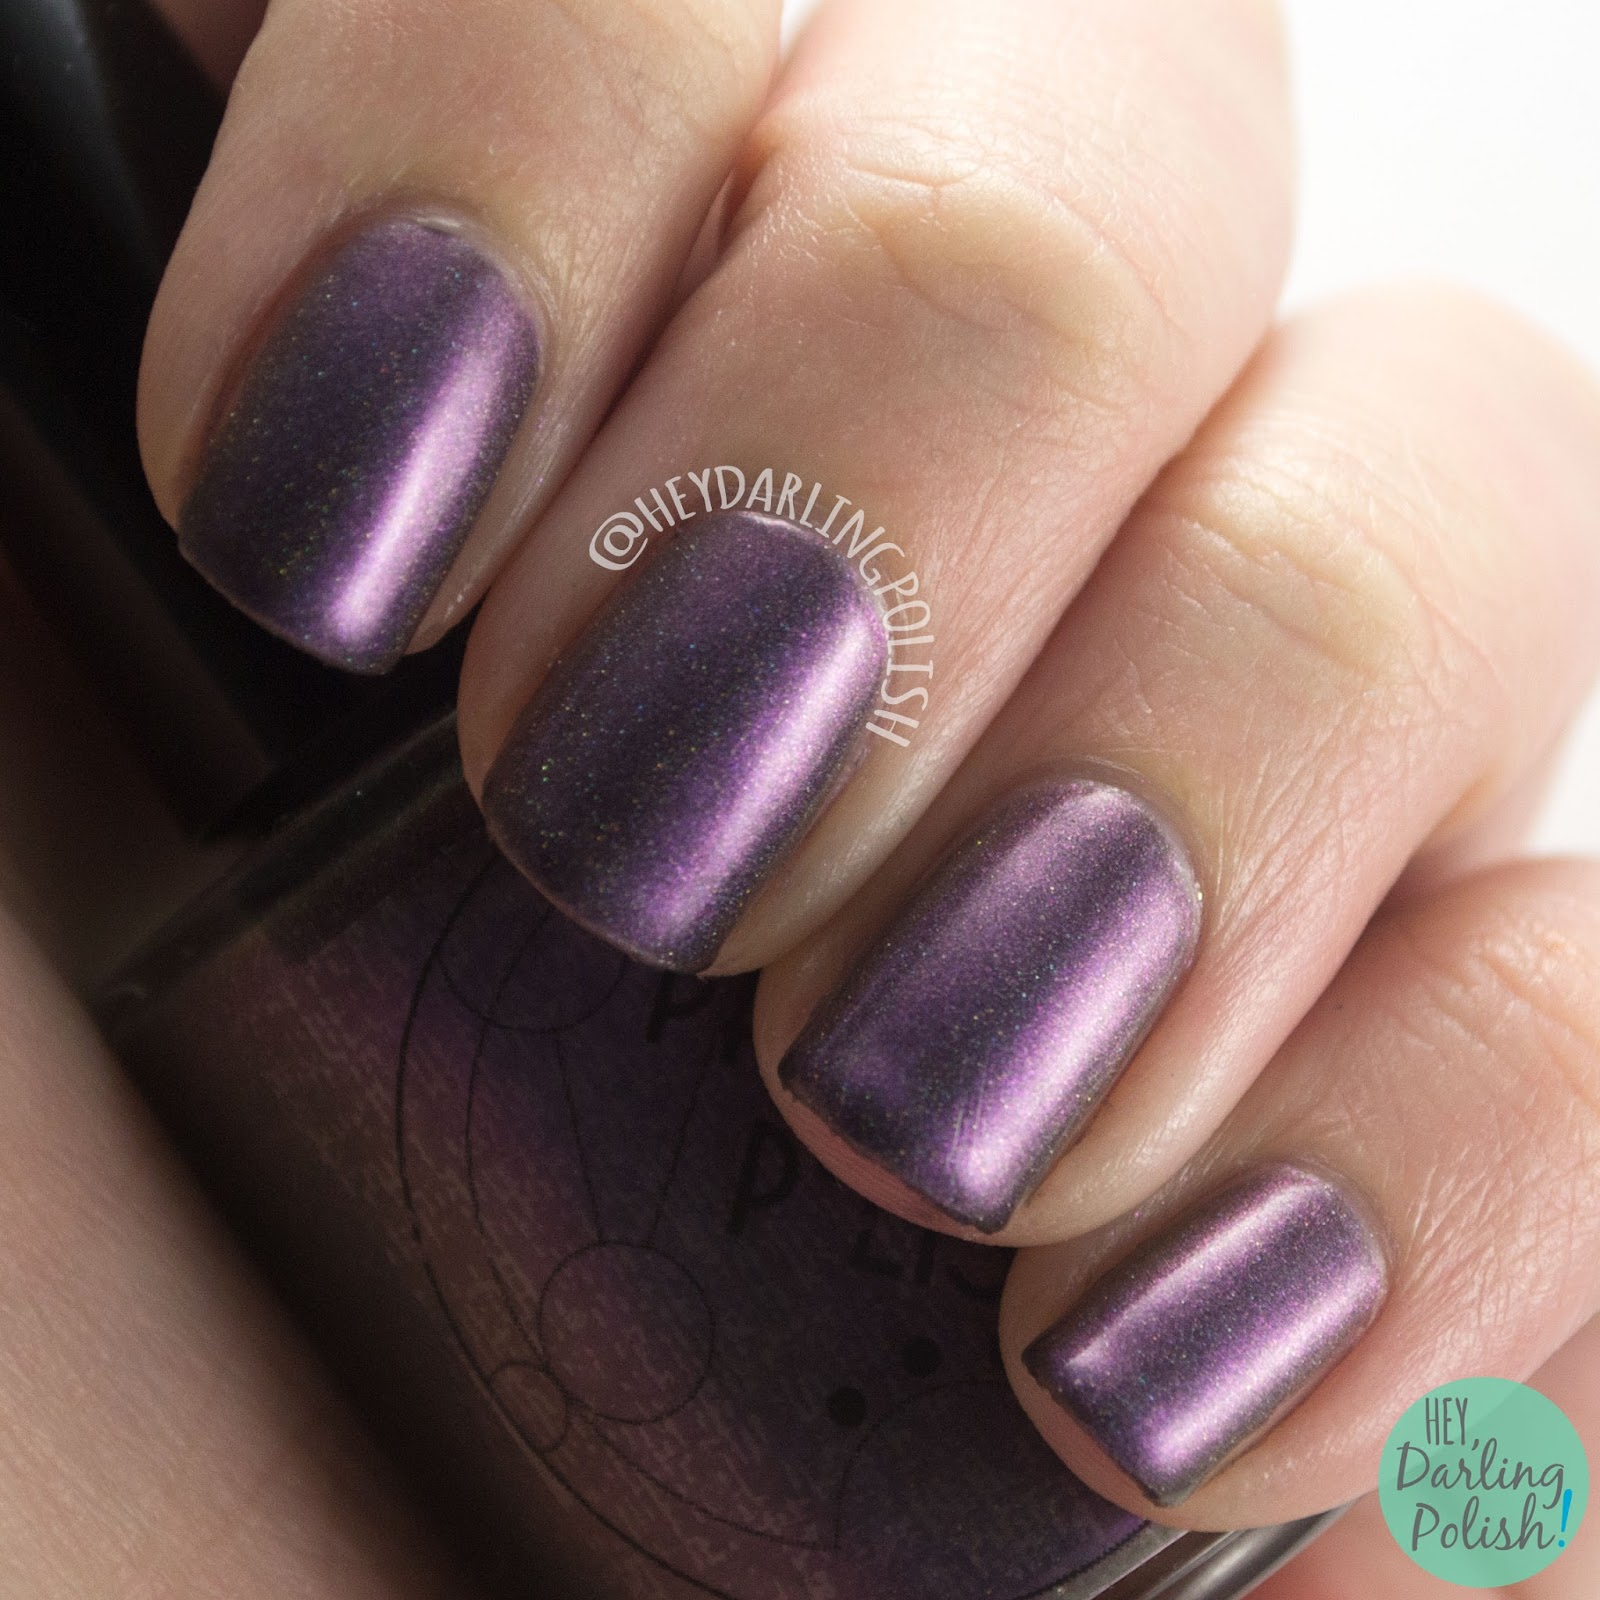 marilee, holo, duochrome, shimmer, science, nails, nail polish, swatch, indie polish, indie, indie nail polish, parallax polish, hey darling polish